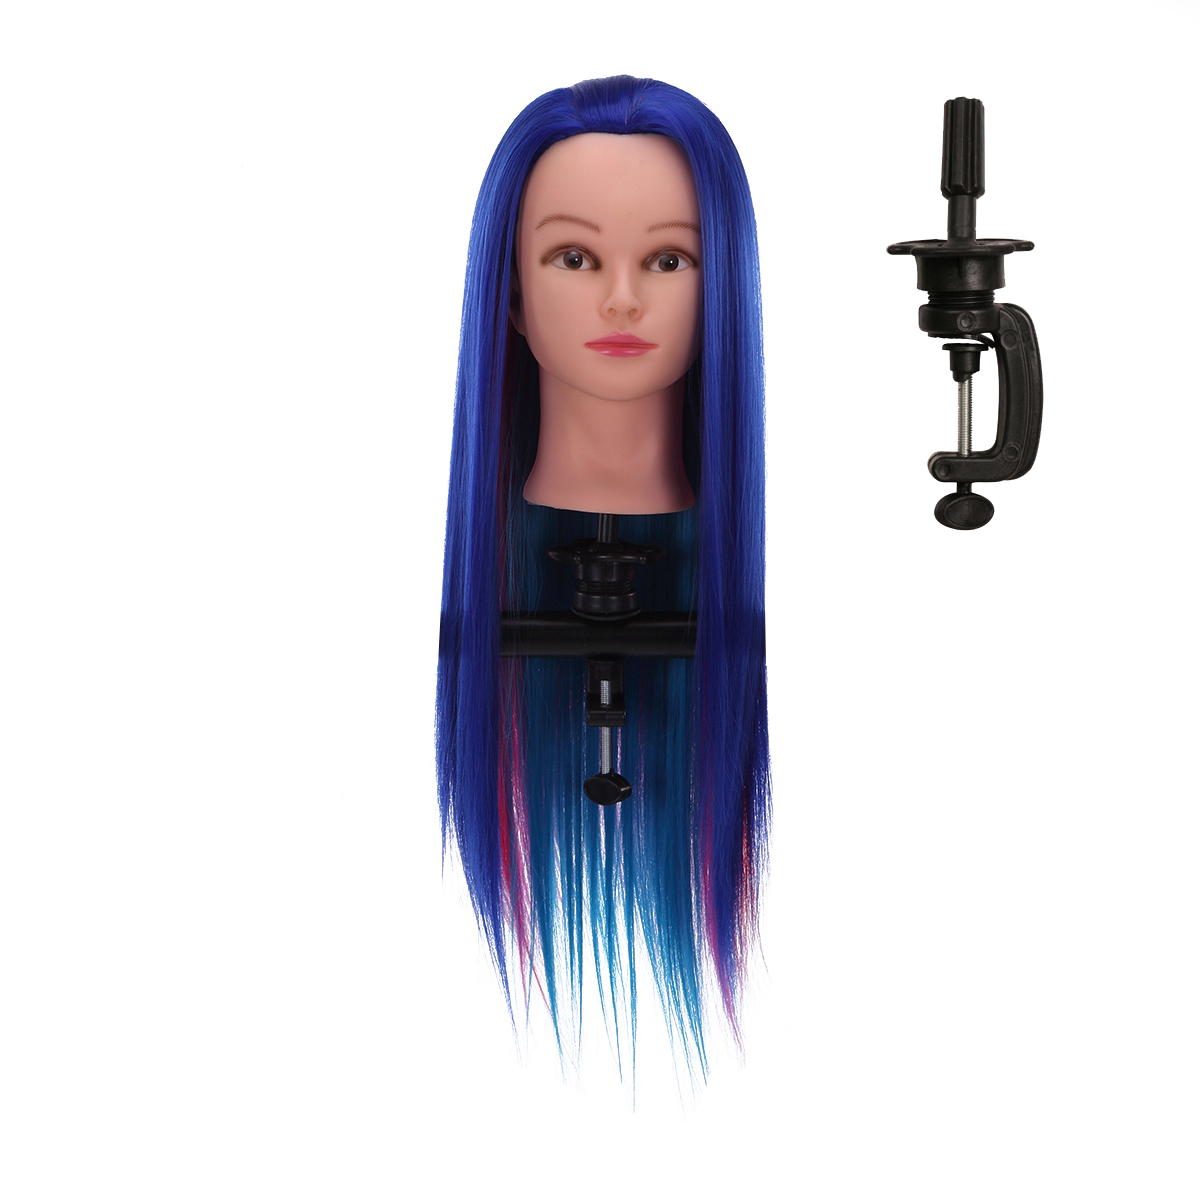 70cm Mixing Color Hair Training Mannequin Head with Clamp Stand Holder for Barbel Shop Pro Hairdressing Styling Tool Accessories